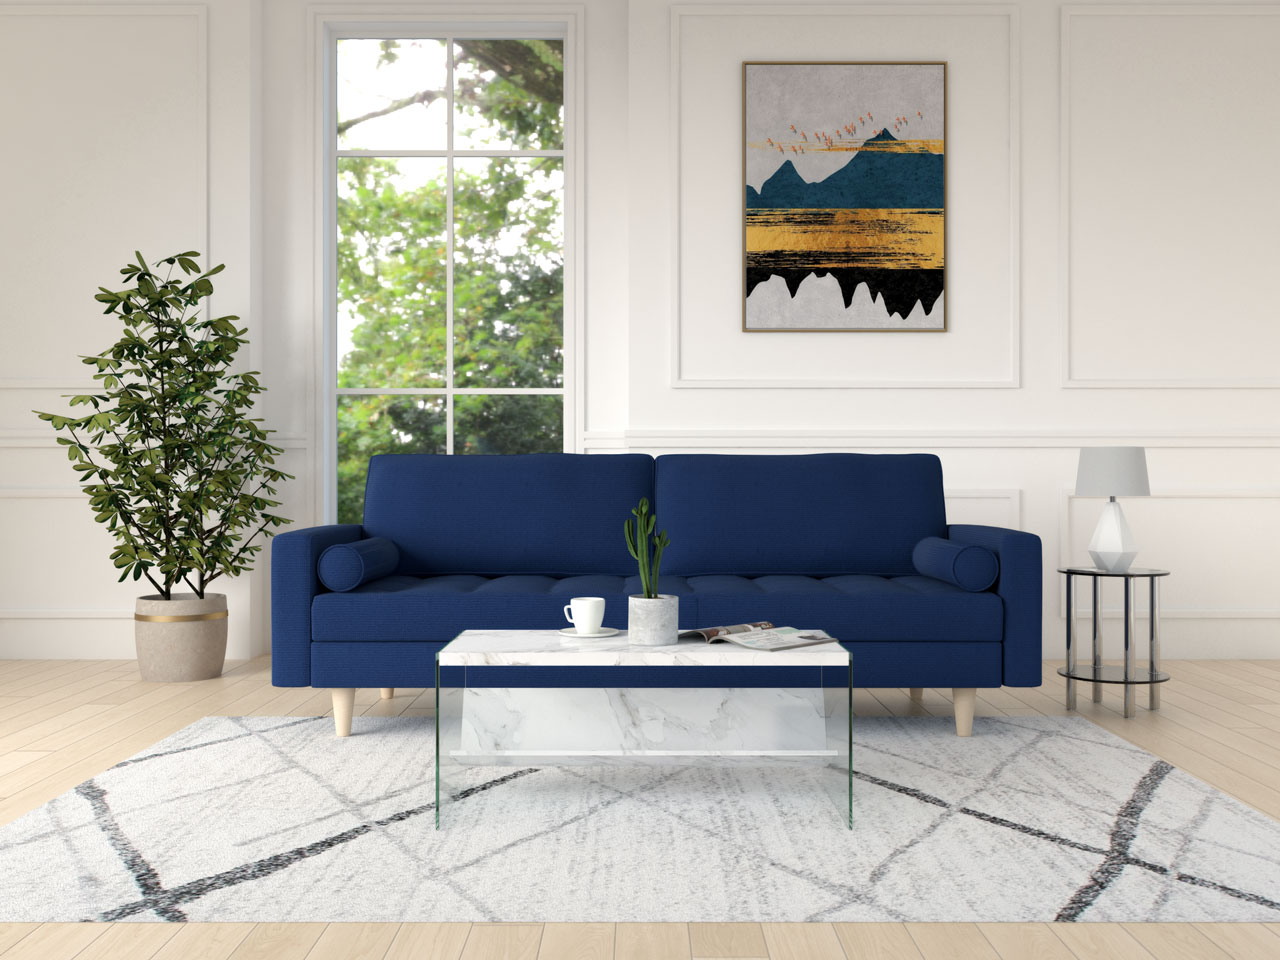 White contemporary style coffee table with a blue couch